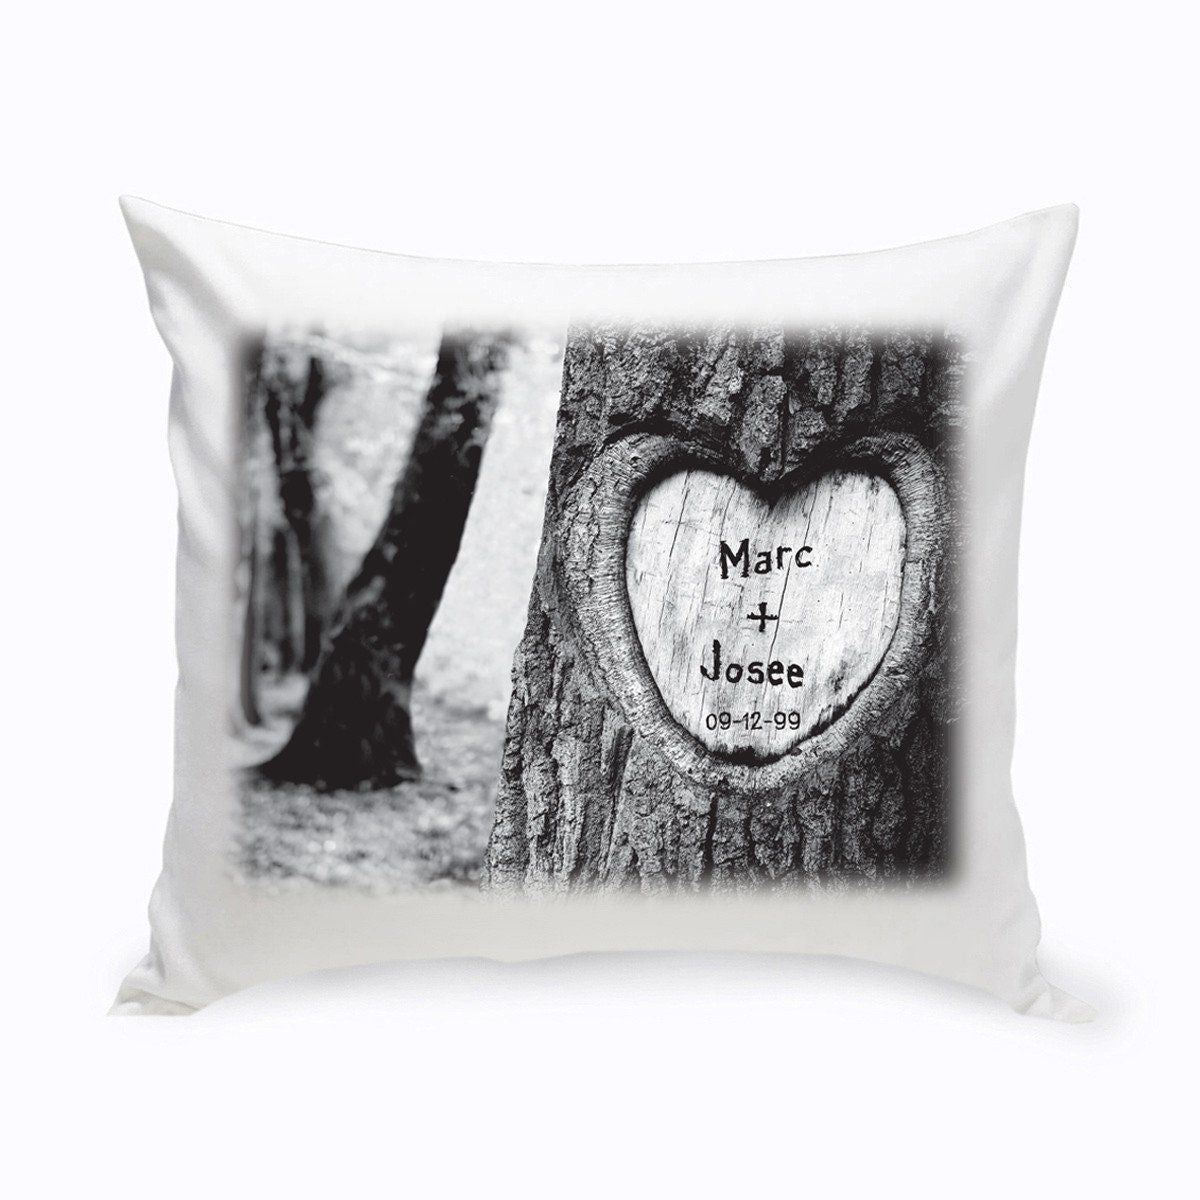 Personalized-Everlasting-Love-Tree-Carving-Throw-Pillow